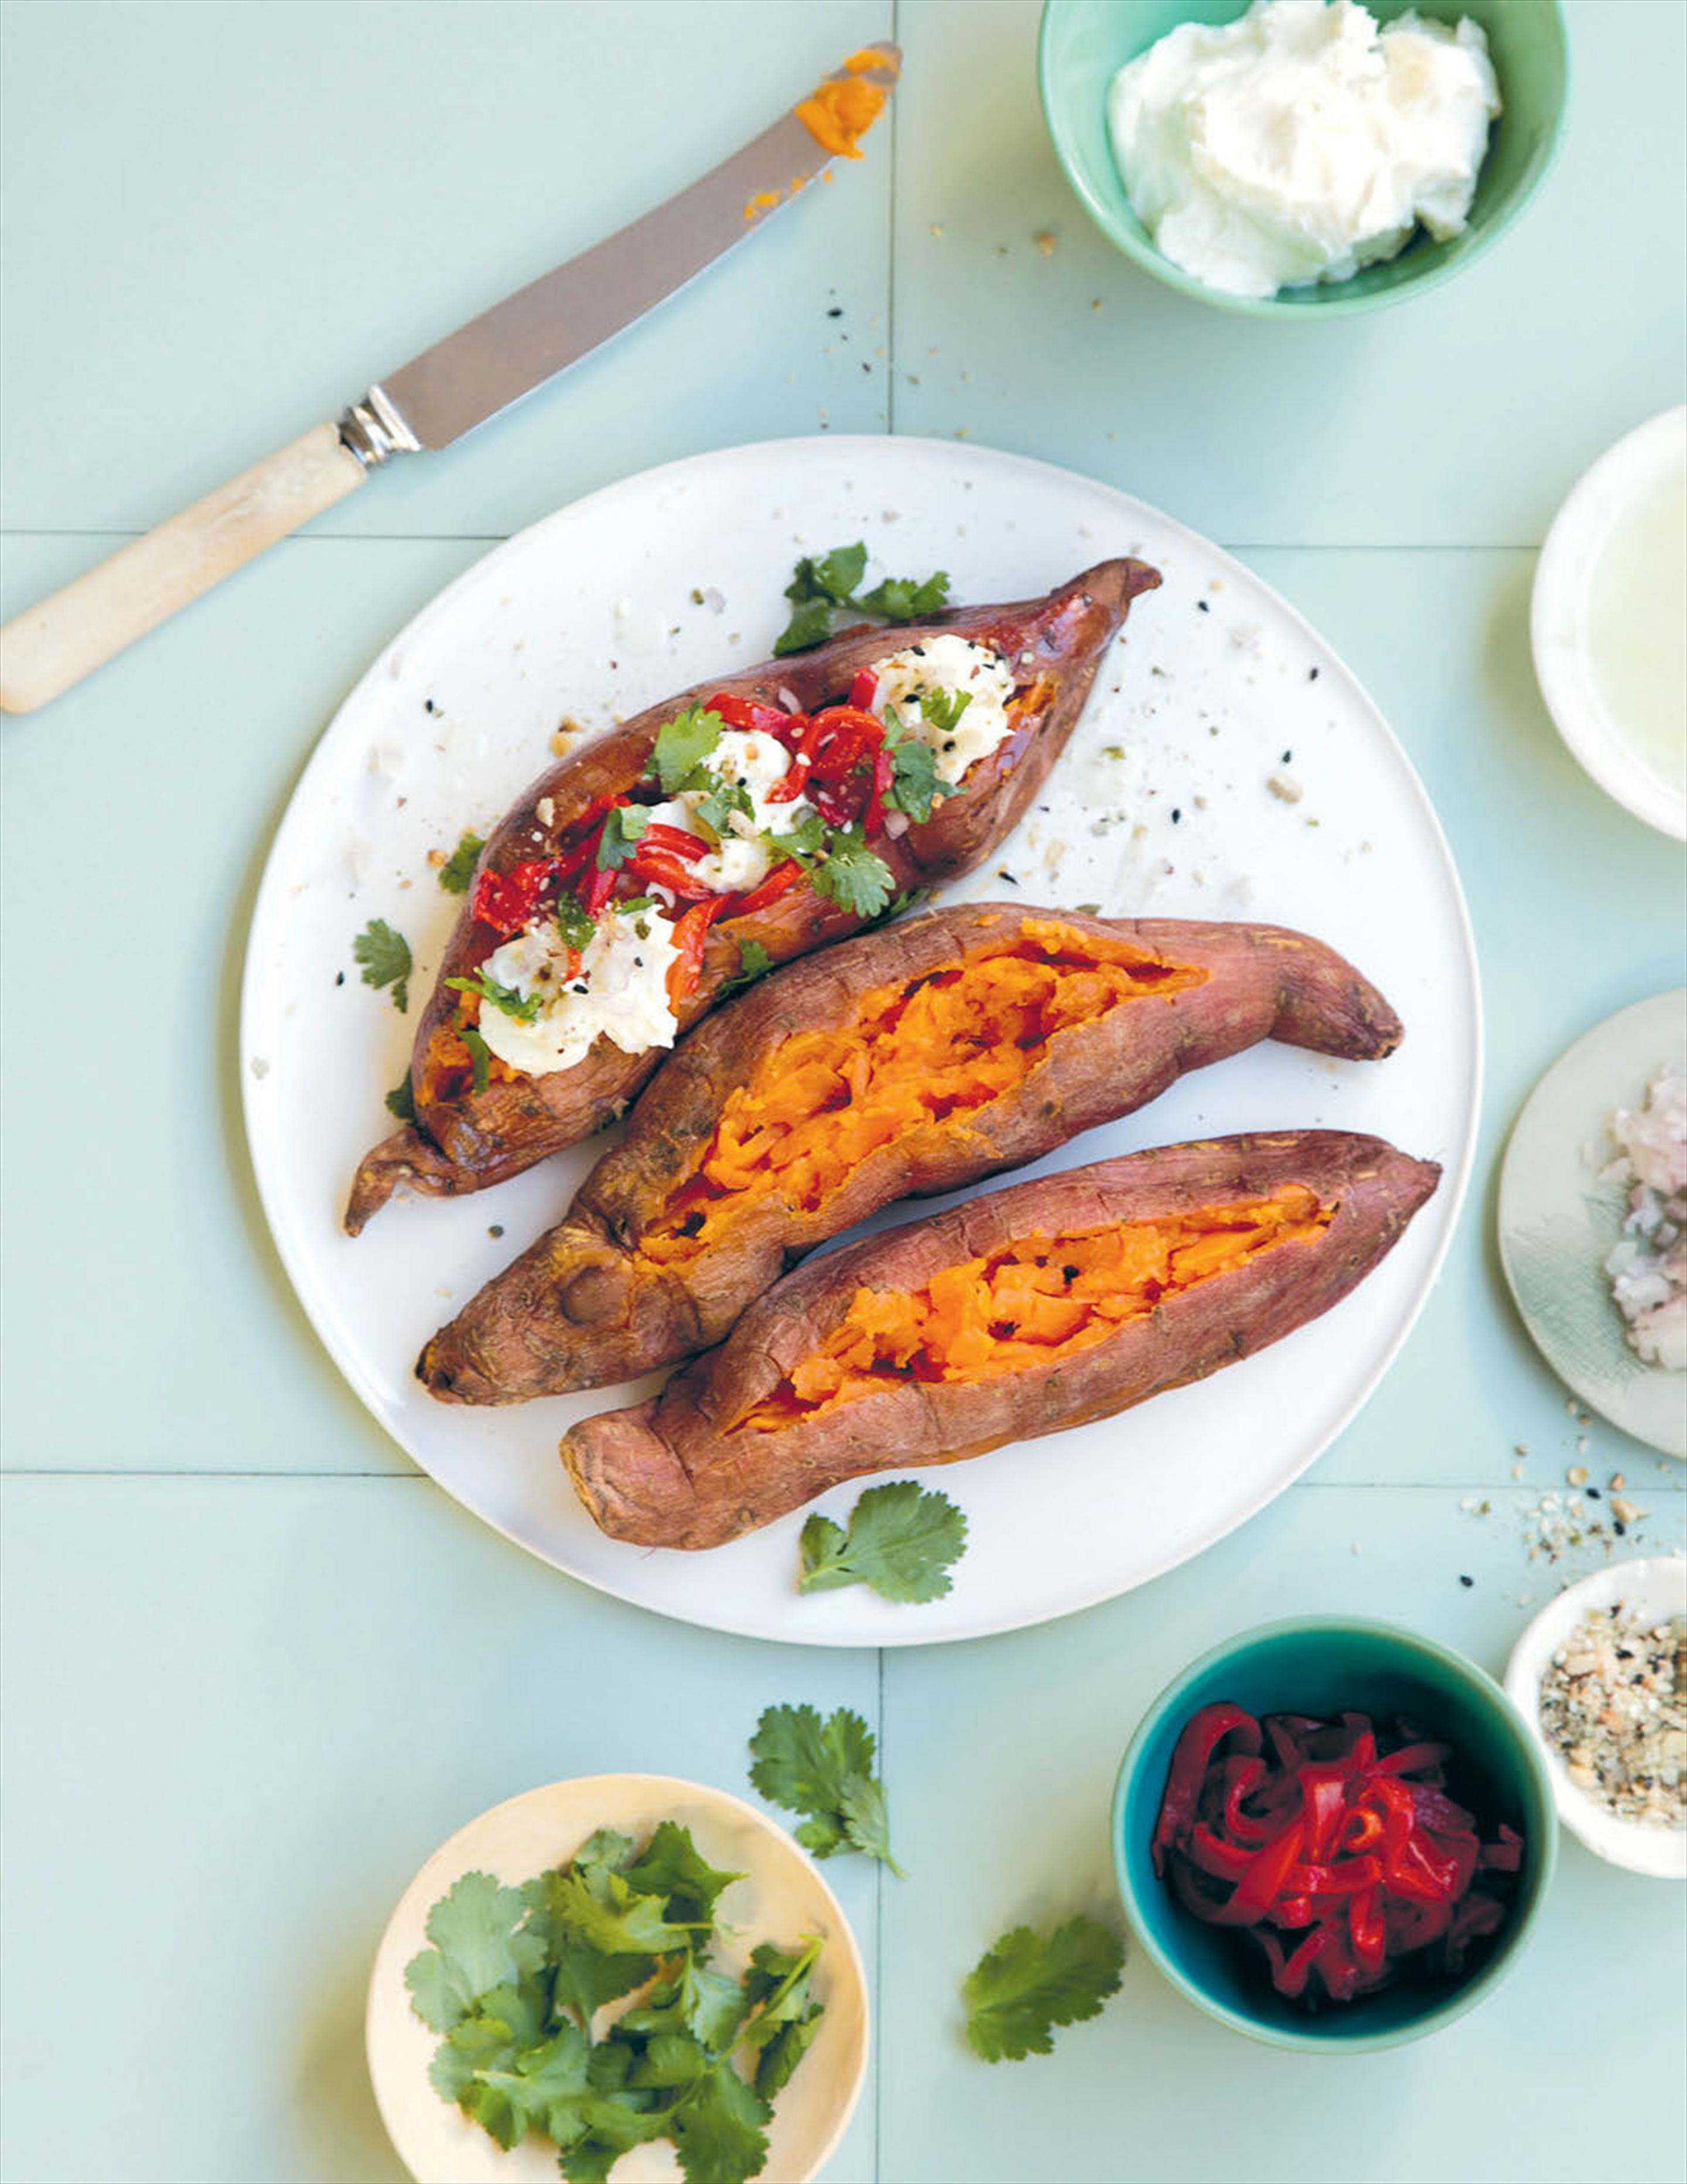 Roasted sweet potatoes with hot red Turkish peppers and labneh